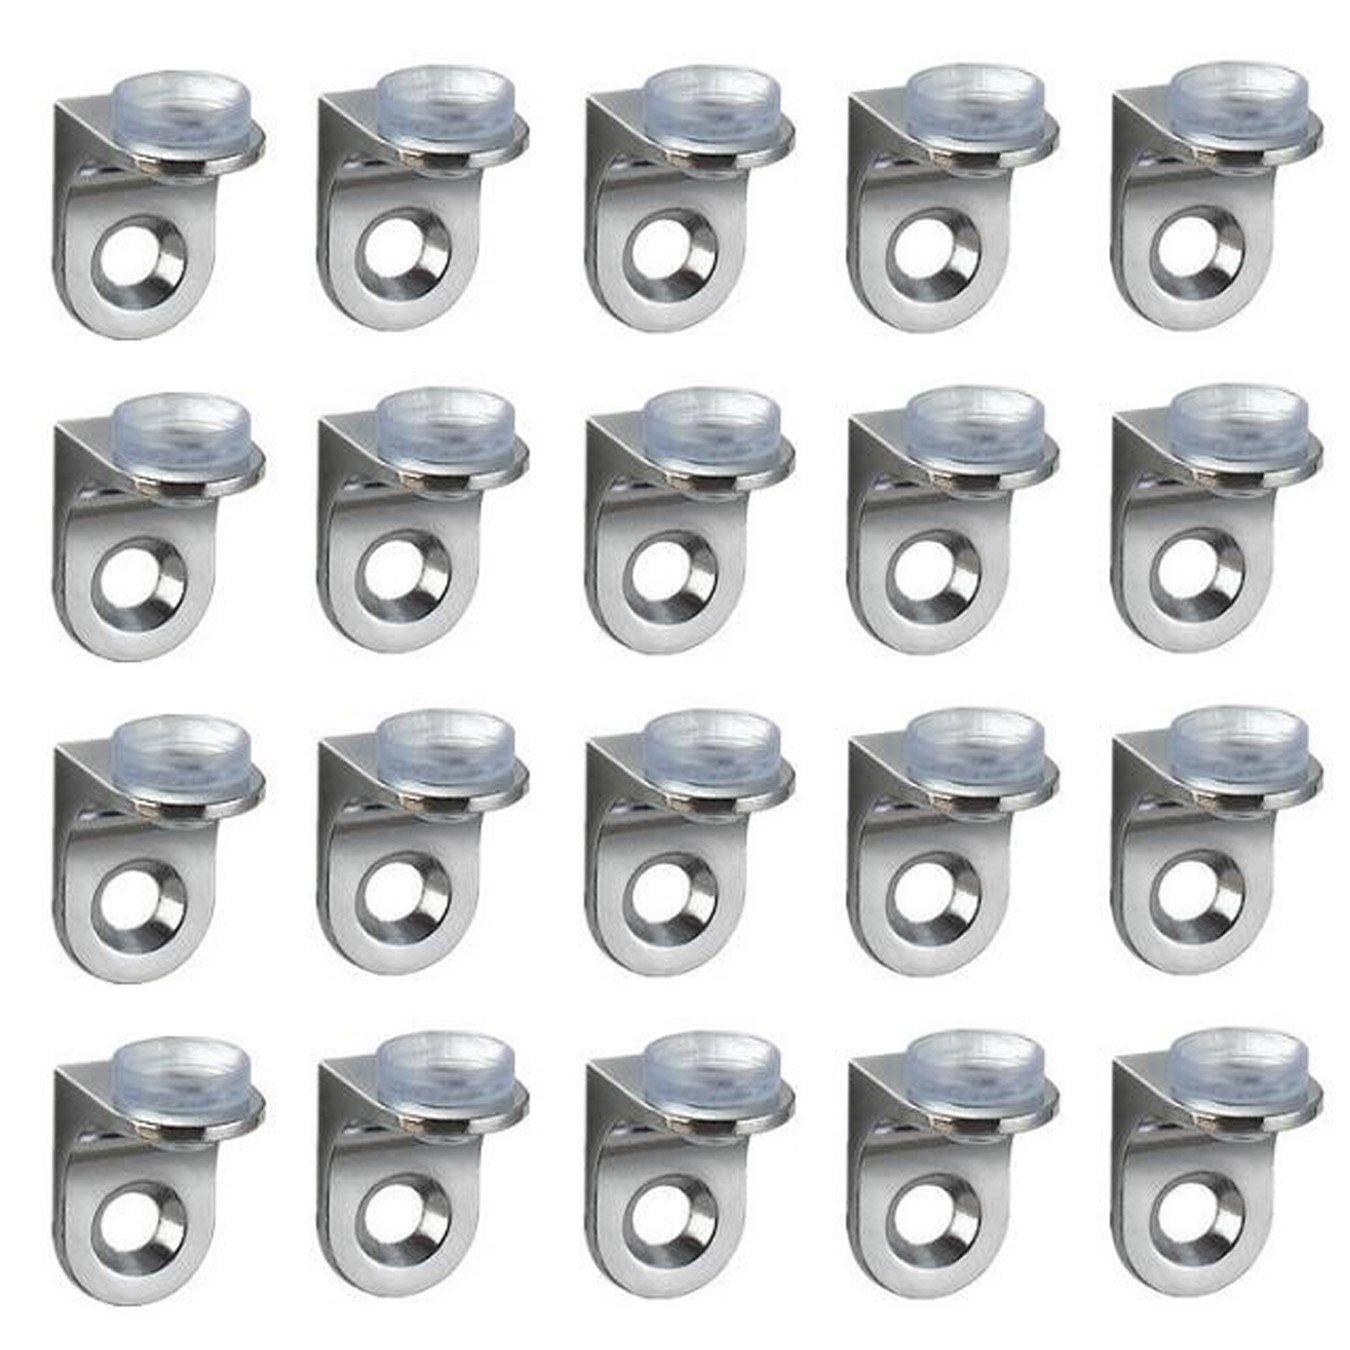 UOOOM 20 pcs Right Angle Fixing Clip Shelf Bracket Suction Cup Base Glass Shelve Support